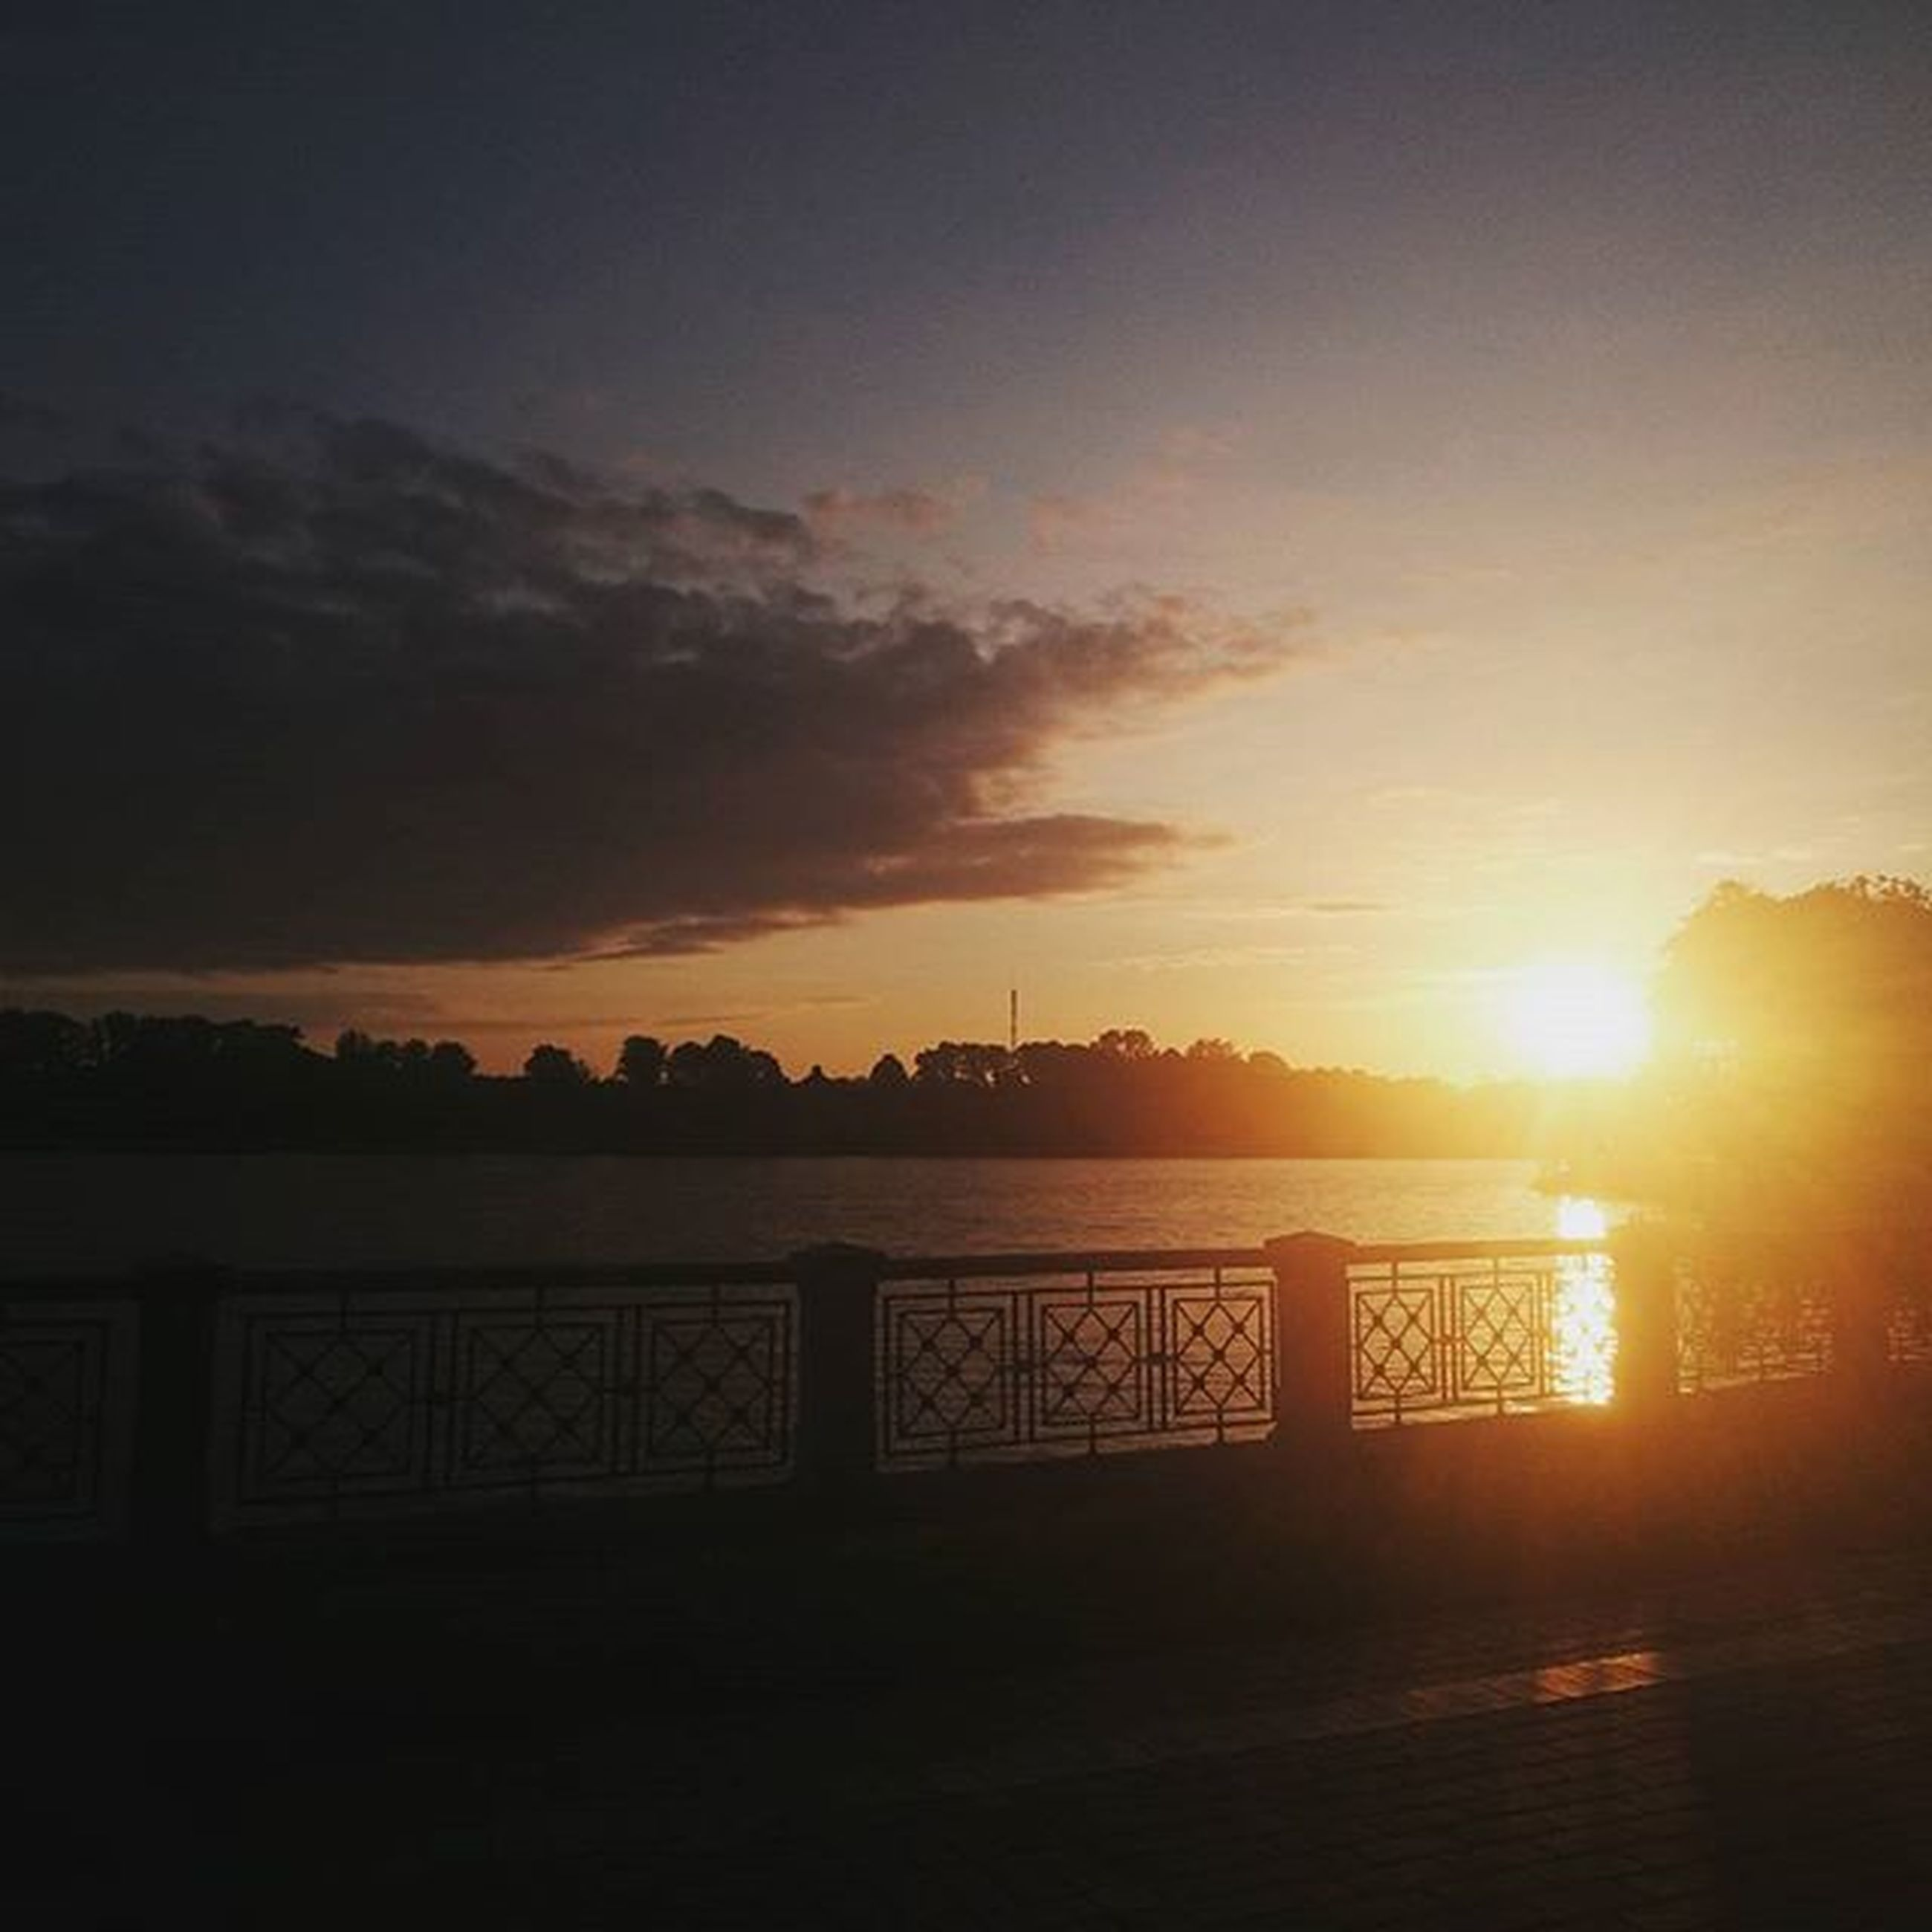 sunset, sun, silhouette, sky, orange color, built structure, railing, architecture, water, sunlight, scenics, tranquility, beauty in nature, tranquil scene, sunbeam, river, bridge - man made structure, cloud - sky, nature, connection